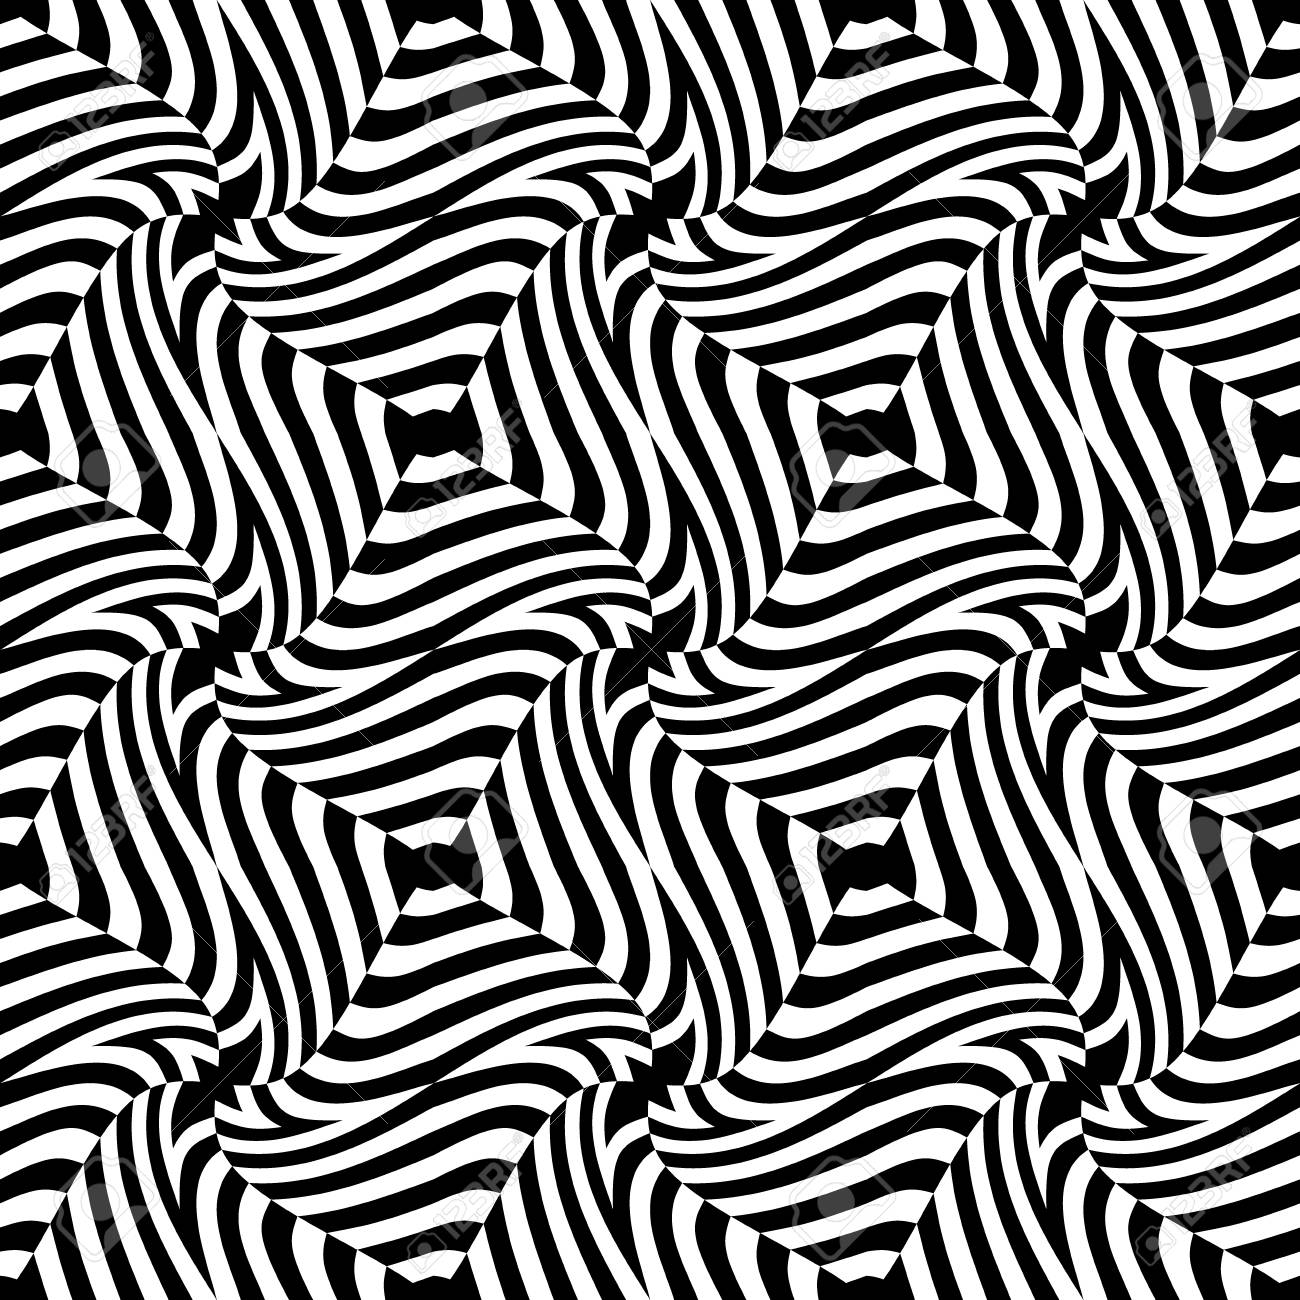 Cross Stitch Pattern Abstract geometric black white 3D optic effect painting pillow Counted Cross Stitch PatternsInstant Download Epattern